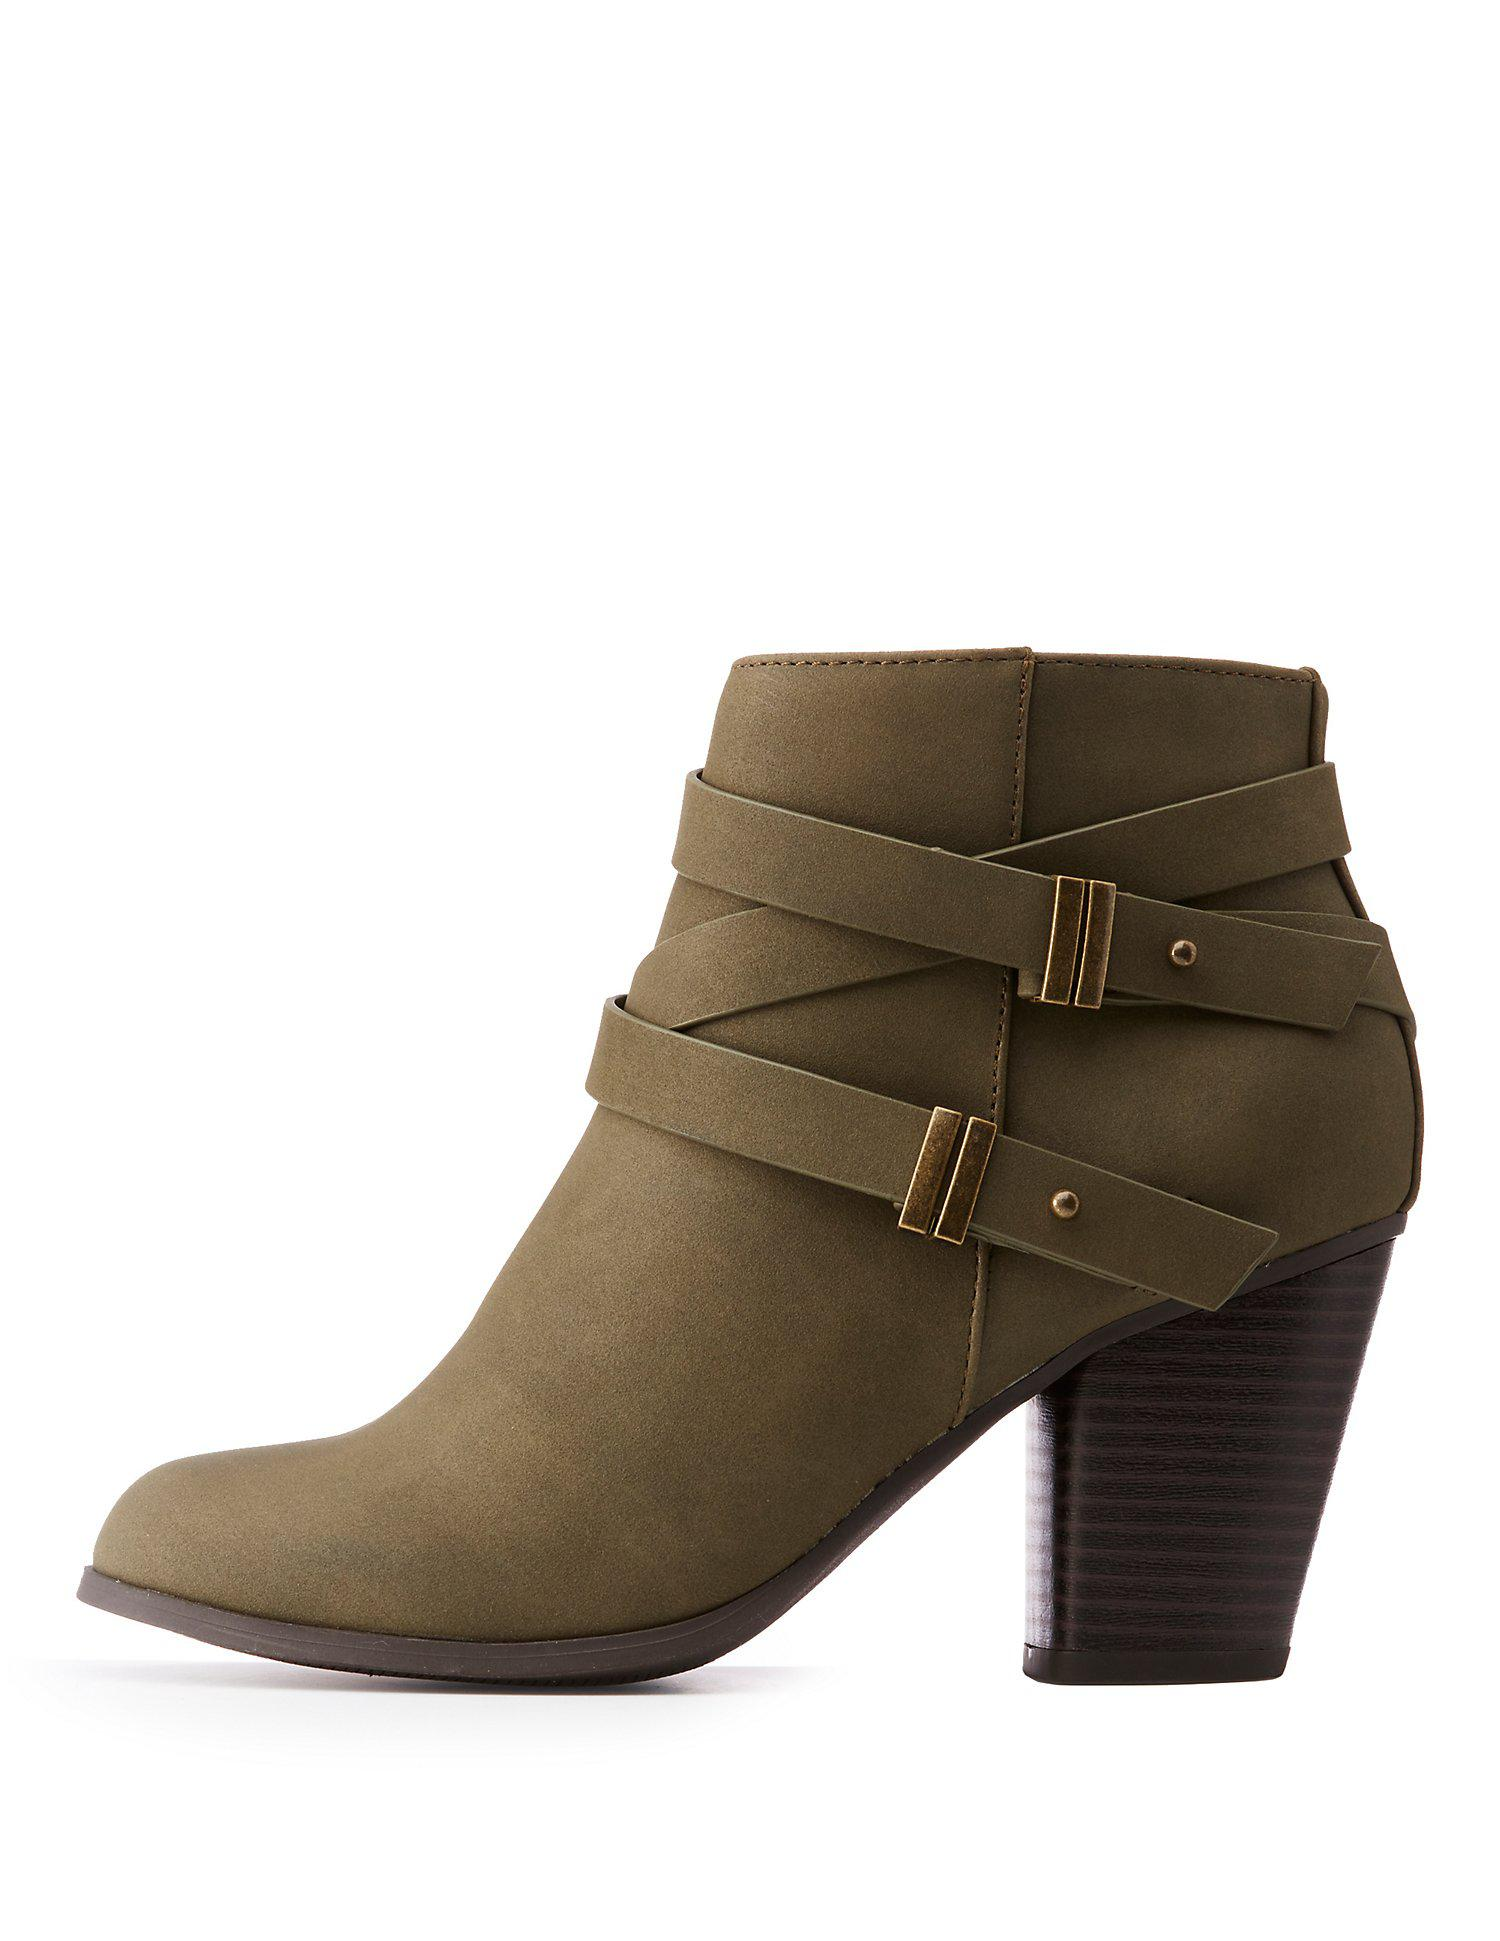 58d001a0a Lyst - Charlotte Russe Double Harness Ankle Booties - Save 60%